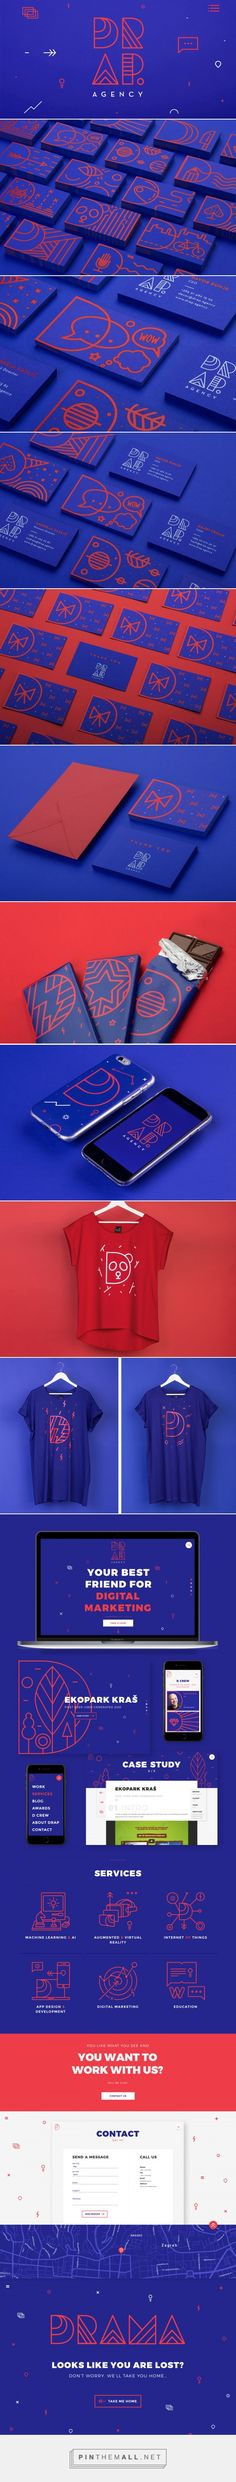 DRAP.agency Branding on Behance... - a grouped images picture - Pin Them All